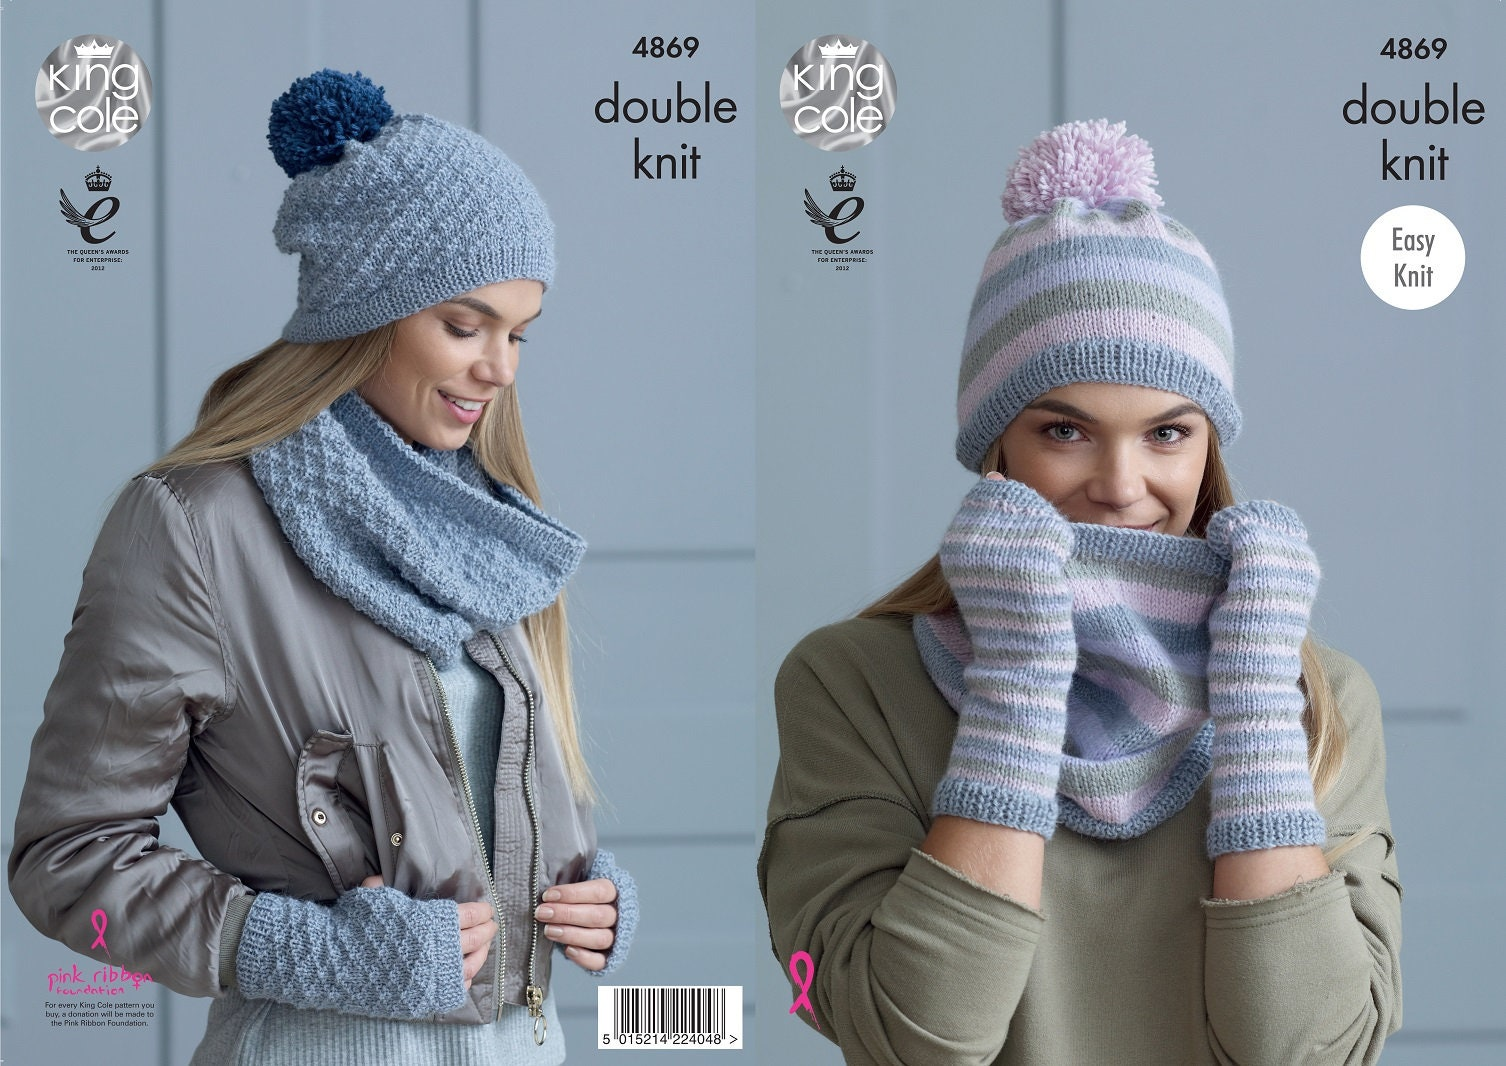 14486a2a9b0e King Cole DK knitting pattern no 4869 Ladies Snoods Hats and